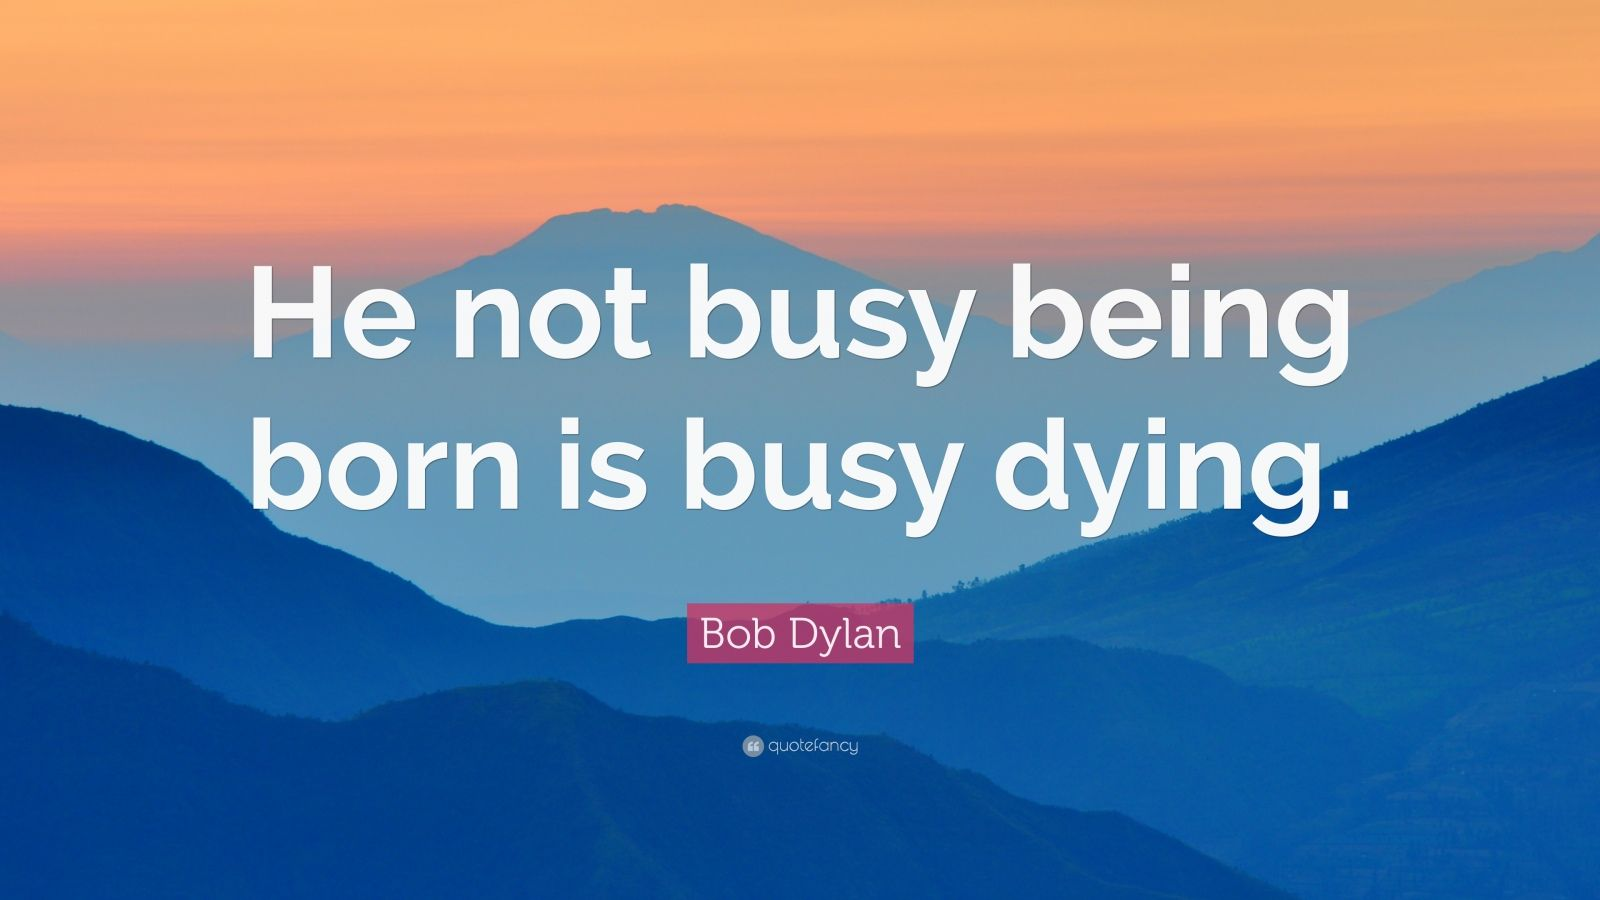 an analysis of contemporary music in he who is not busy being born is busy dying by bob dylan